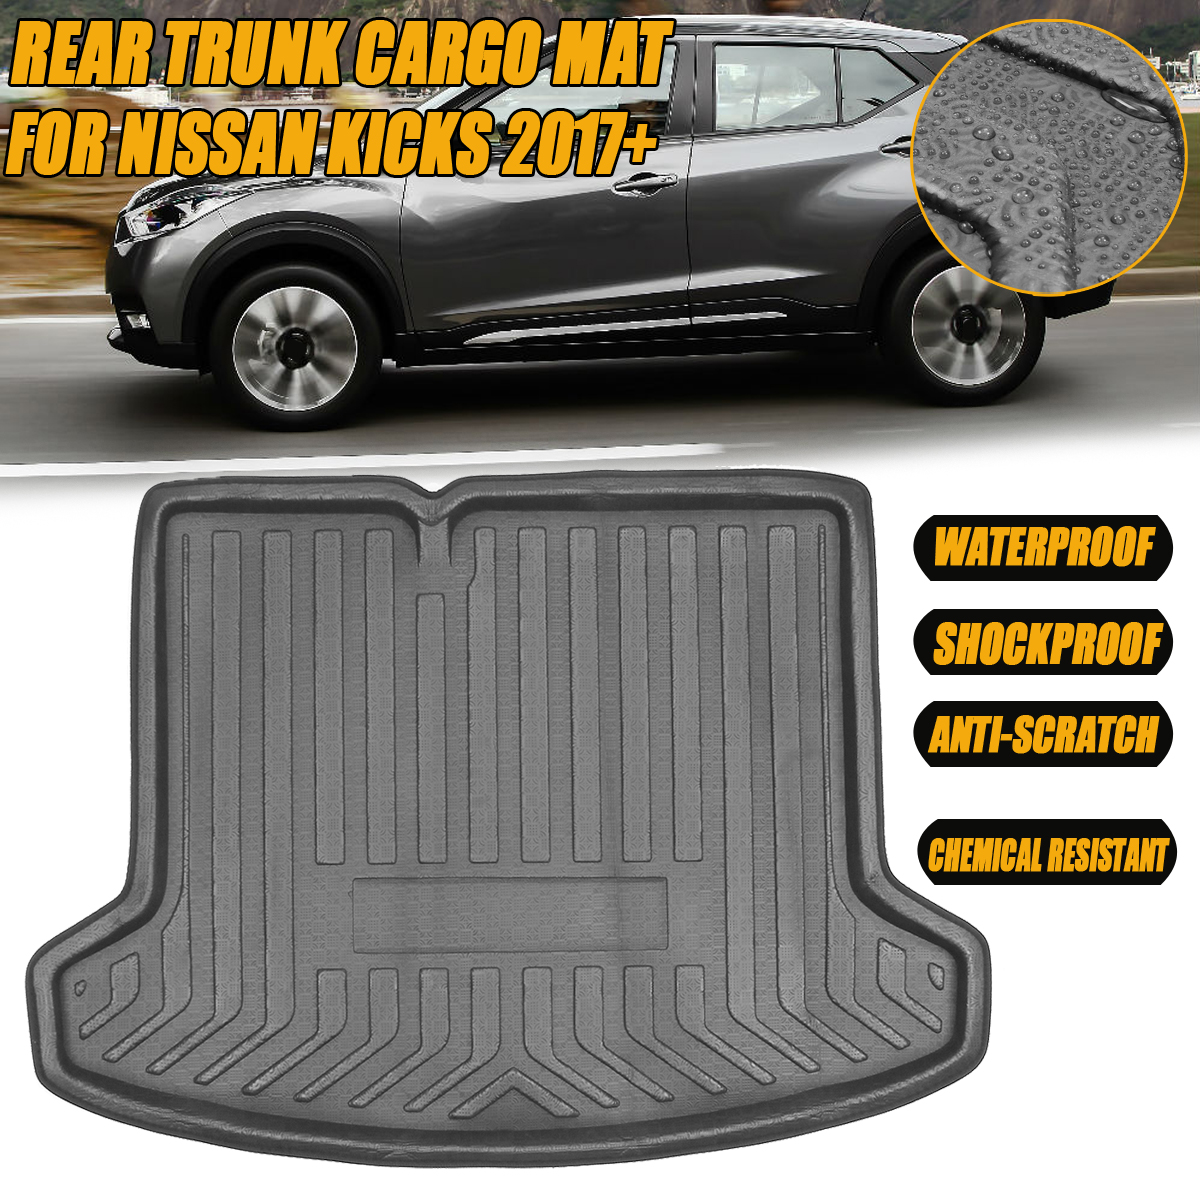 BOOT MAT REAR TRUNK BOOT LINER CARGO FLOOR TRAY CARPET MUD KICK PROTECTOR For Nissan Kicks 2017-2018 Car Car Accessories